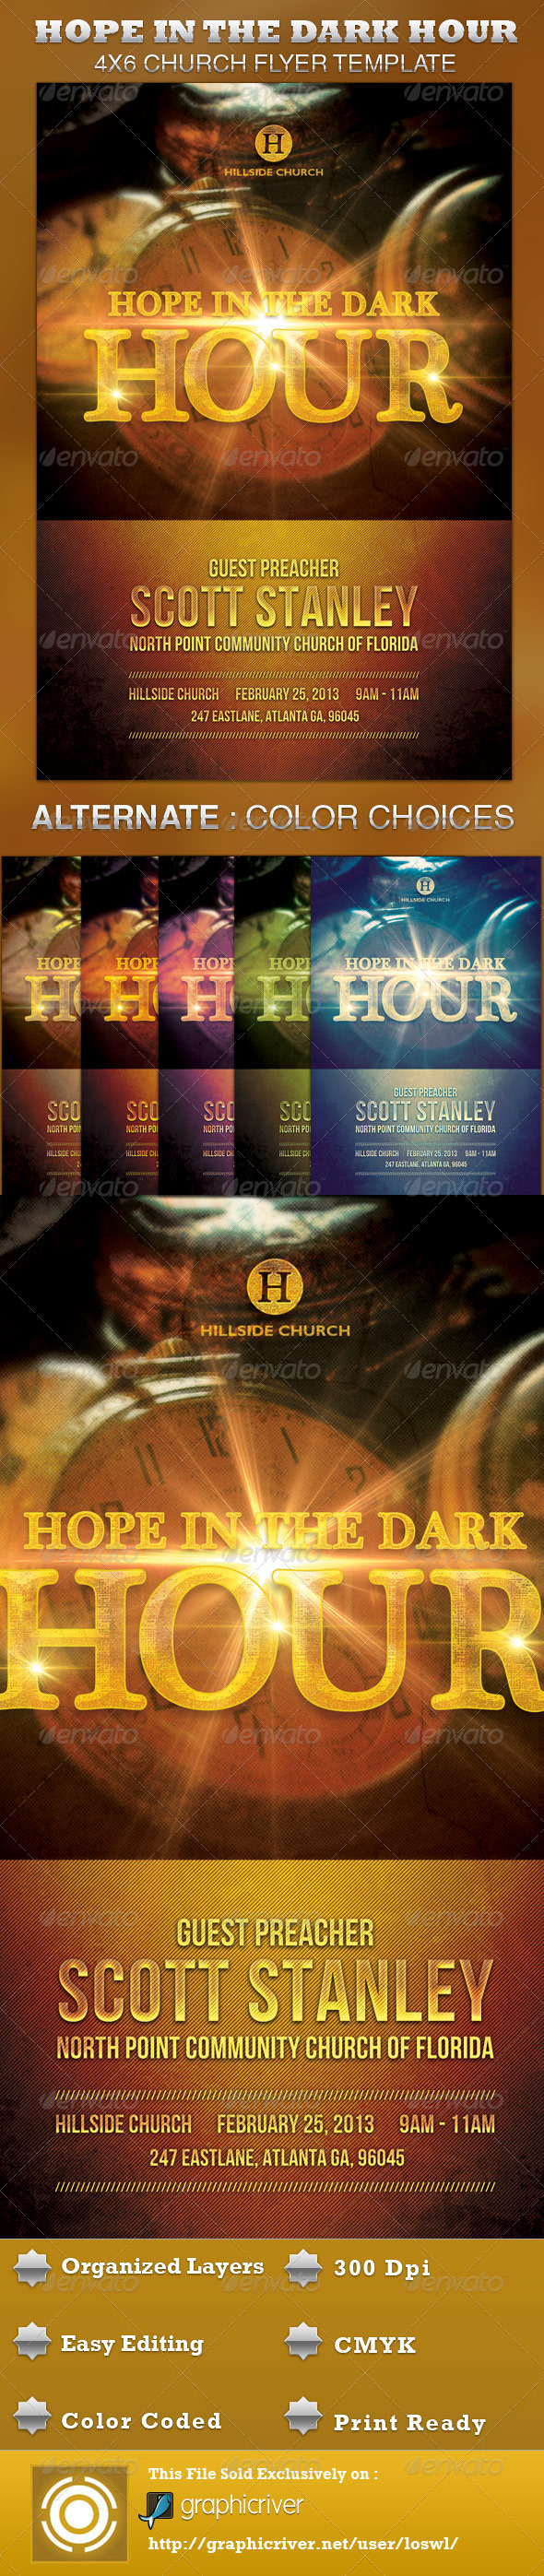 GraphicRiver Hope in the Dark Hour Church Flyer Template 3731795